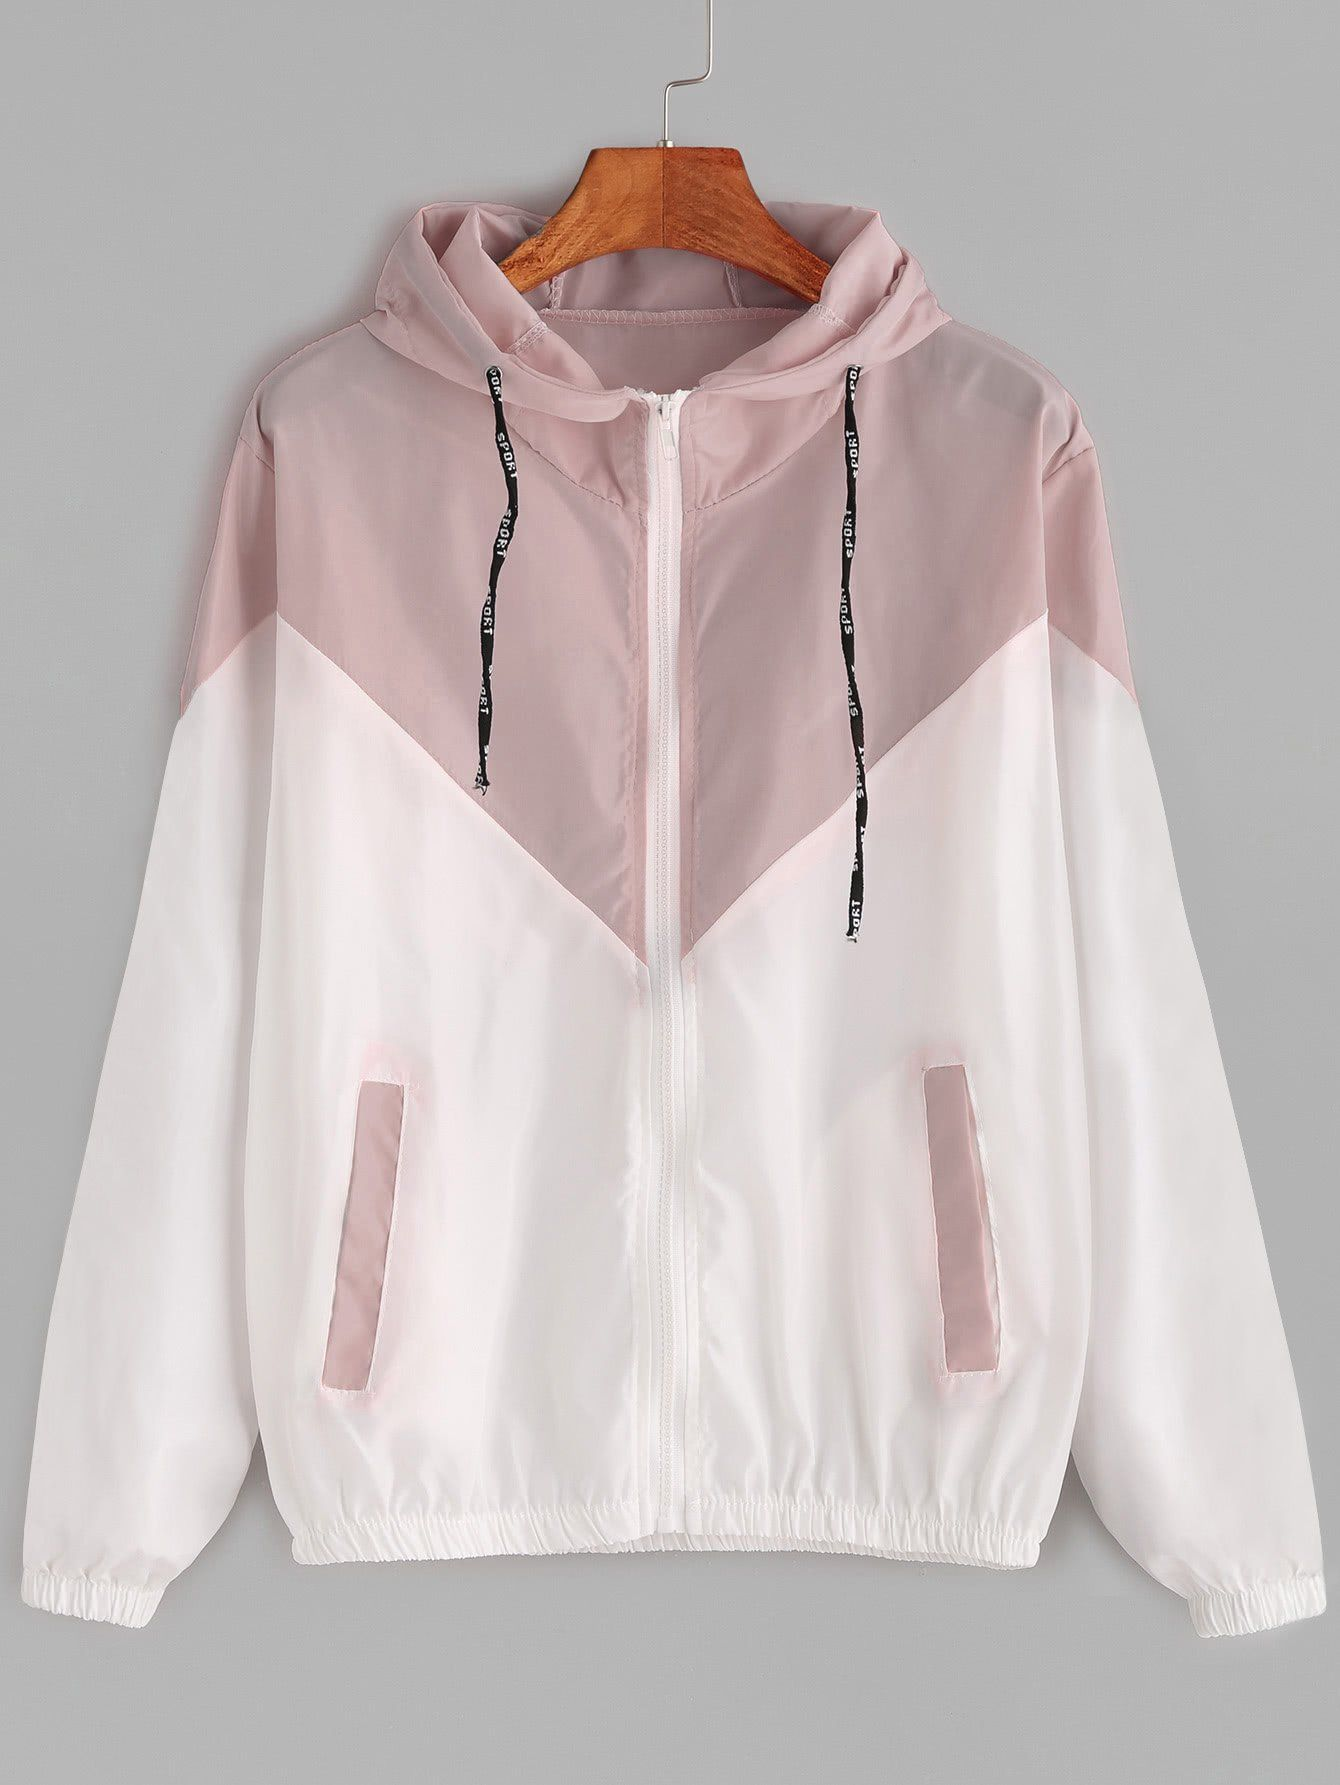 Pink And White Drawstring Zip Up Hooded Jacket Windbreaker